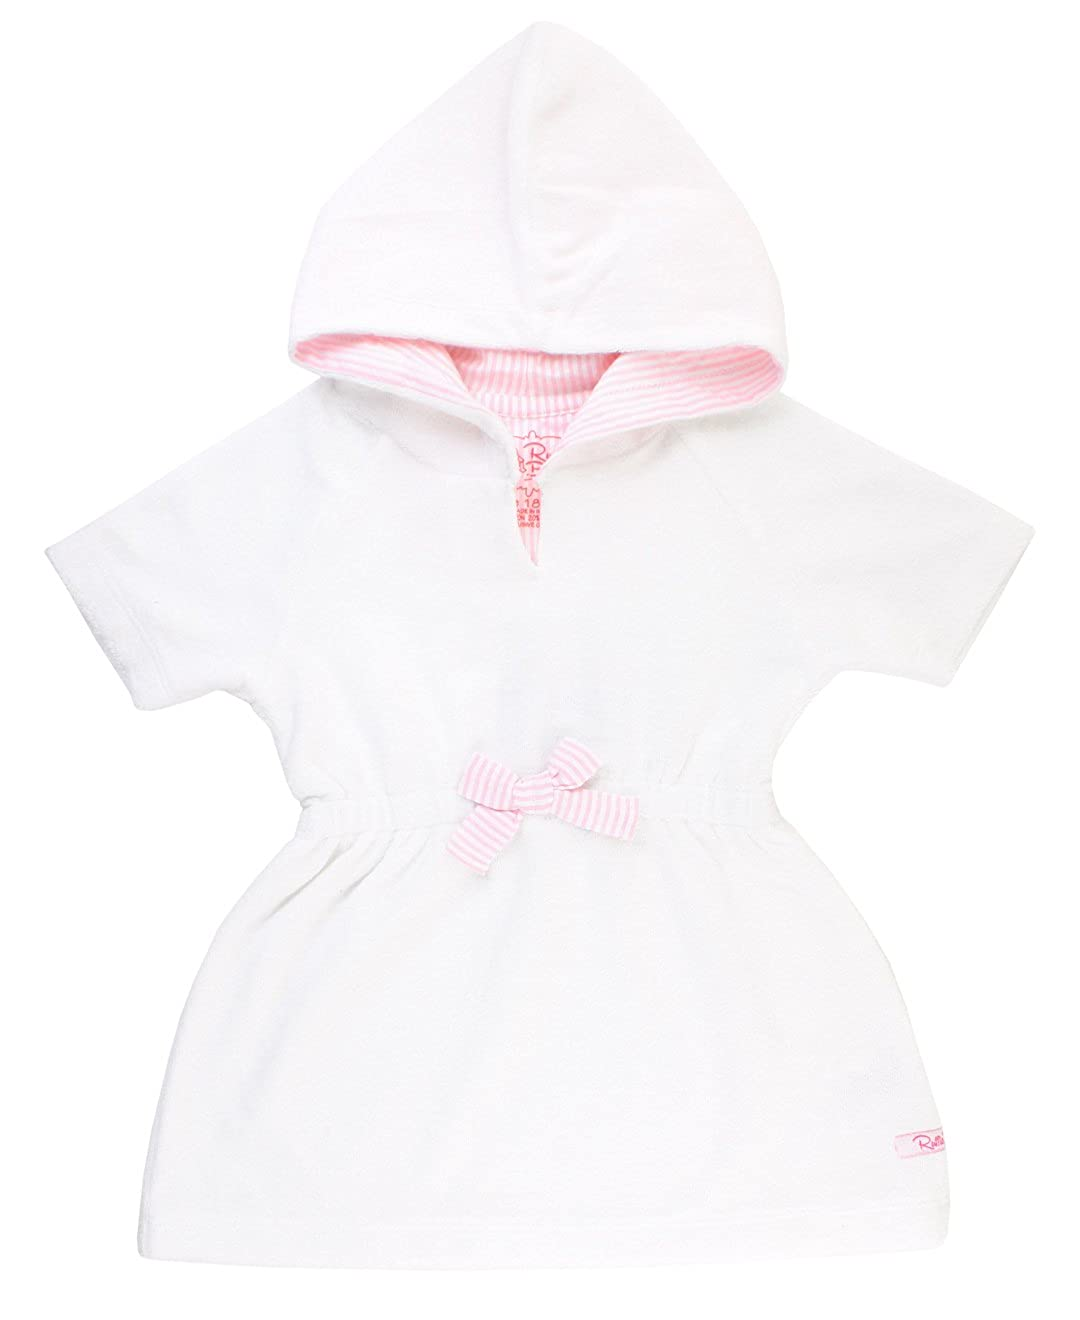 RuffleButts Infant/Toddler Girls White w/Pink Seersucker Terry Cover-Up CUTWHXX-SSPI-BABY